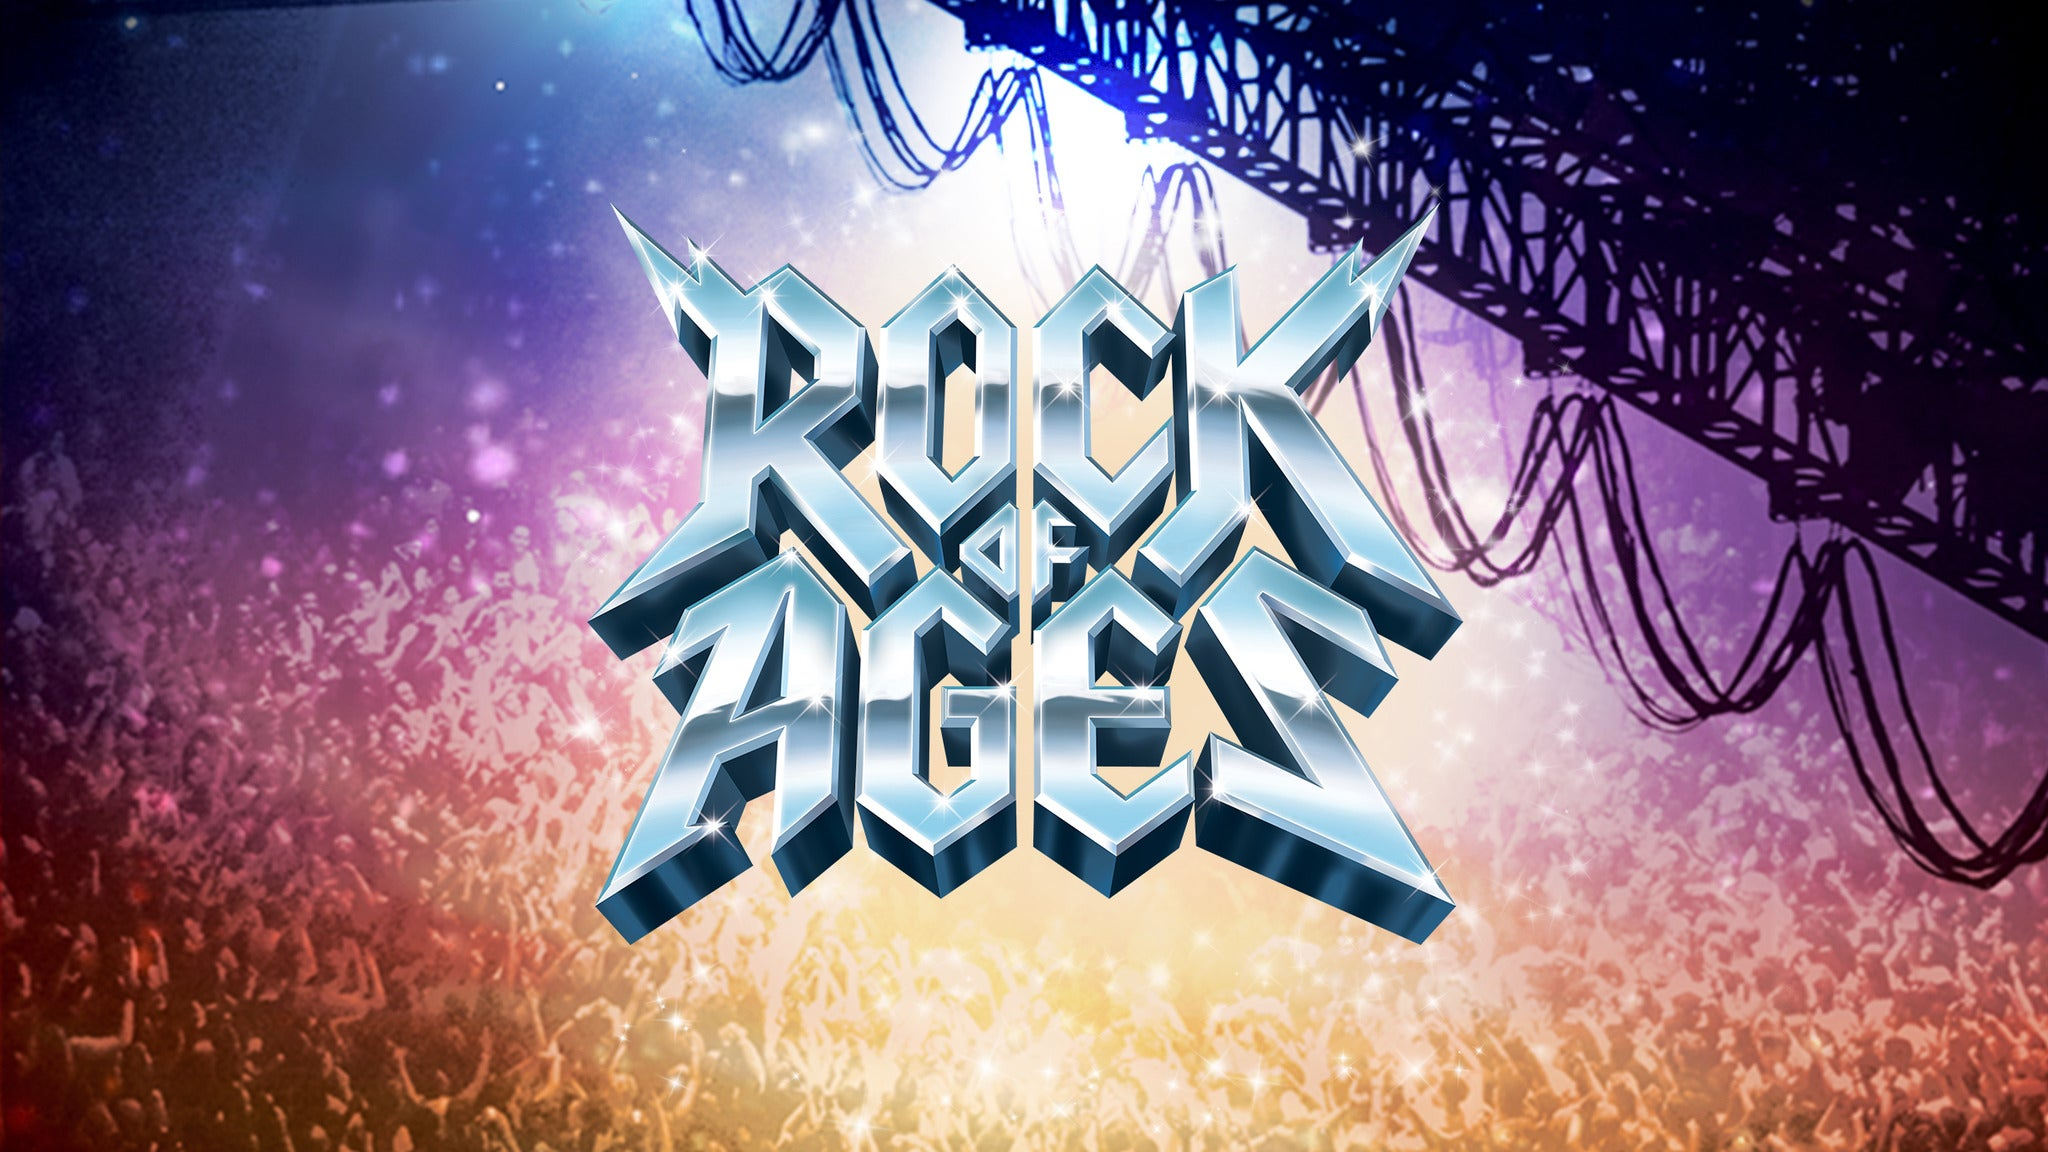 Rock of Ages at Buell Theatre